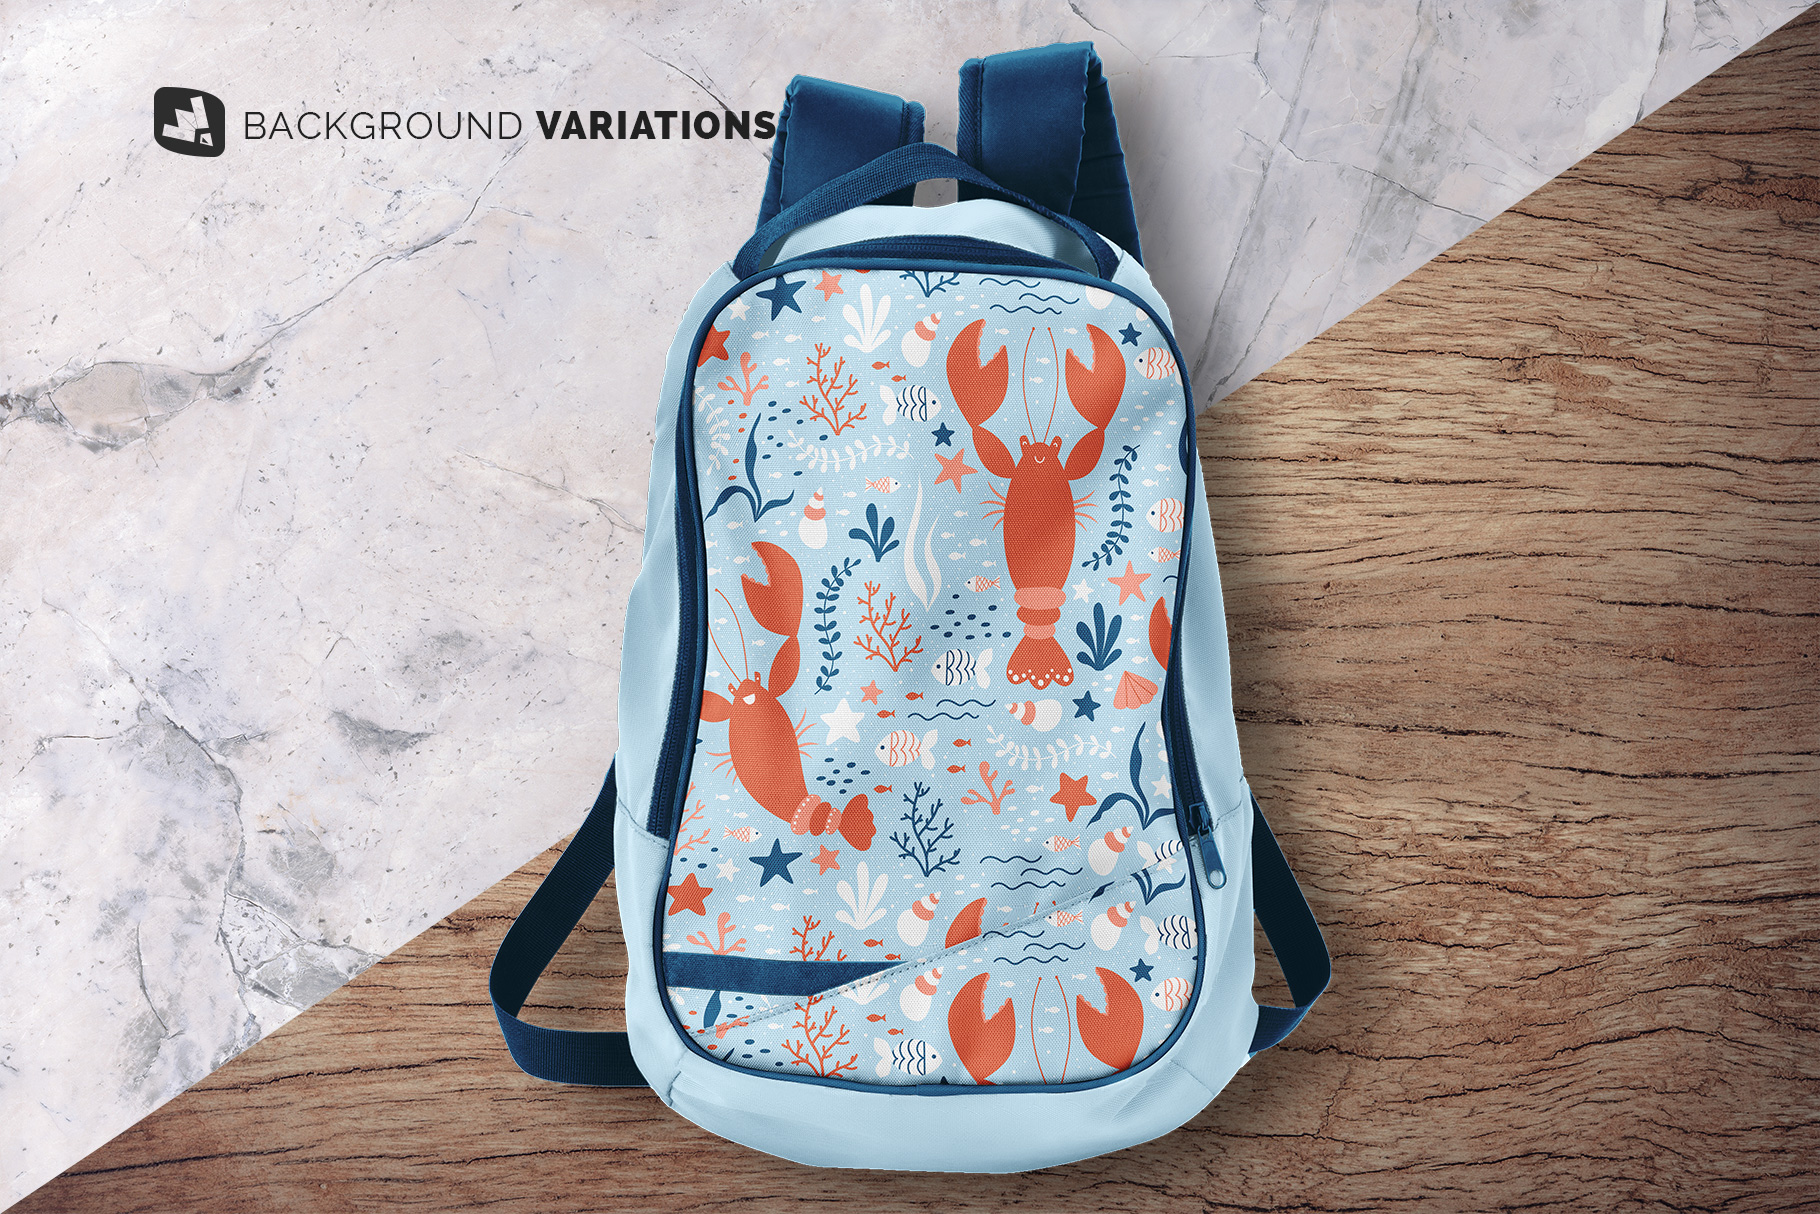 background options of the top view backpack mockup